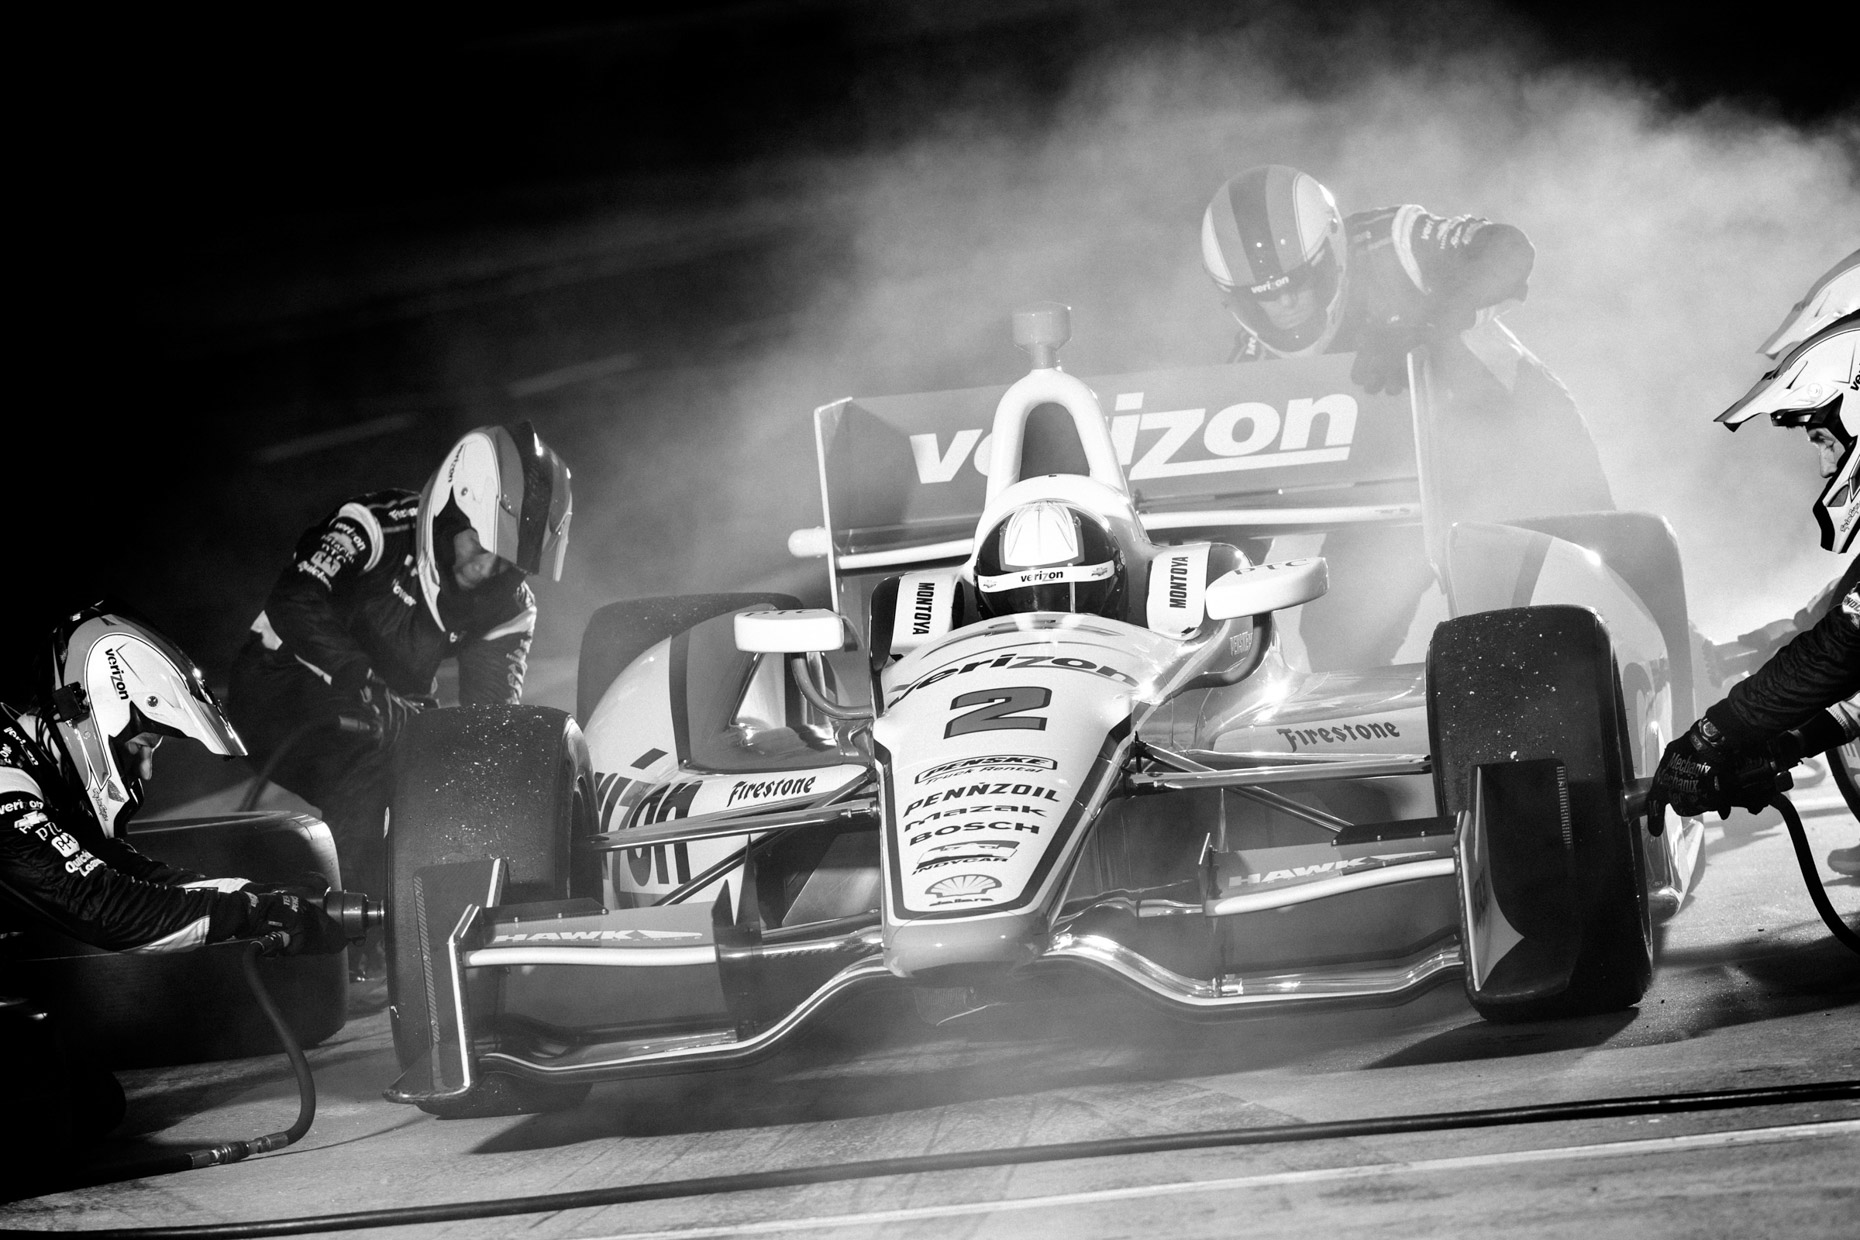 Dramatic pit stop action photographed by dramatic sport photographer Andy Batt